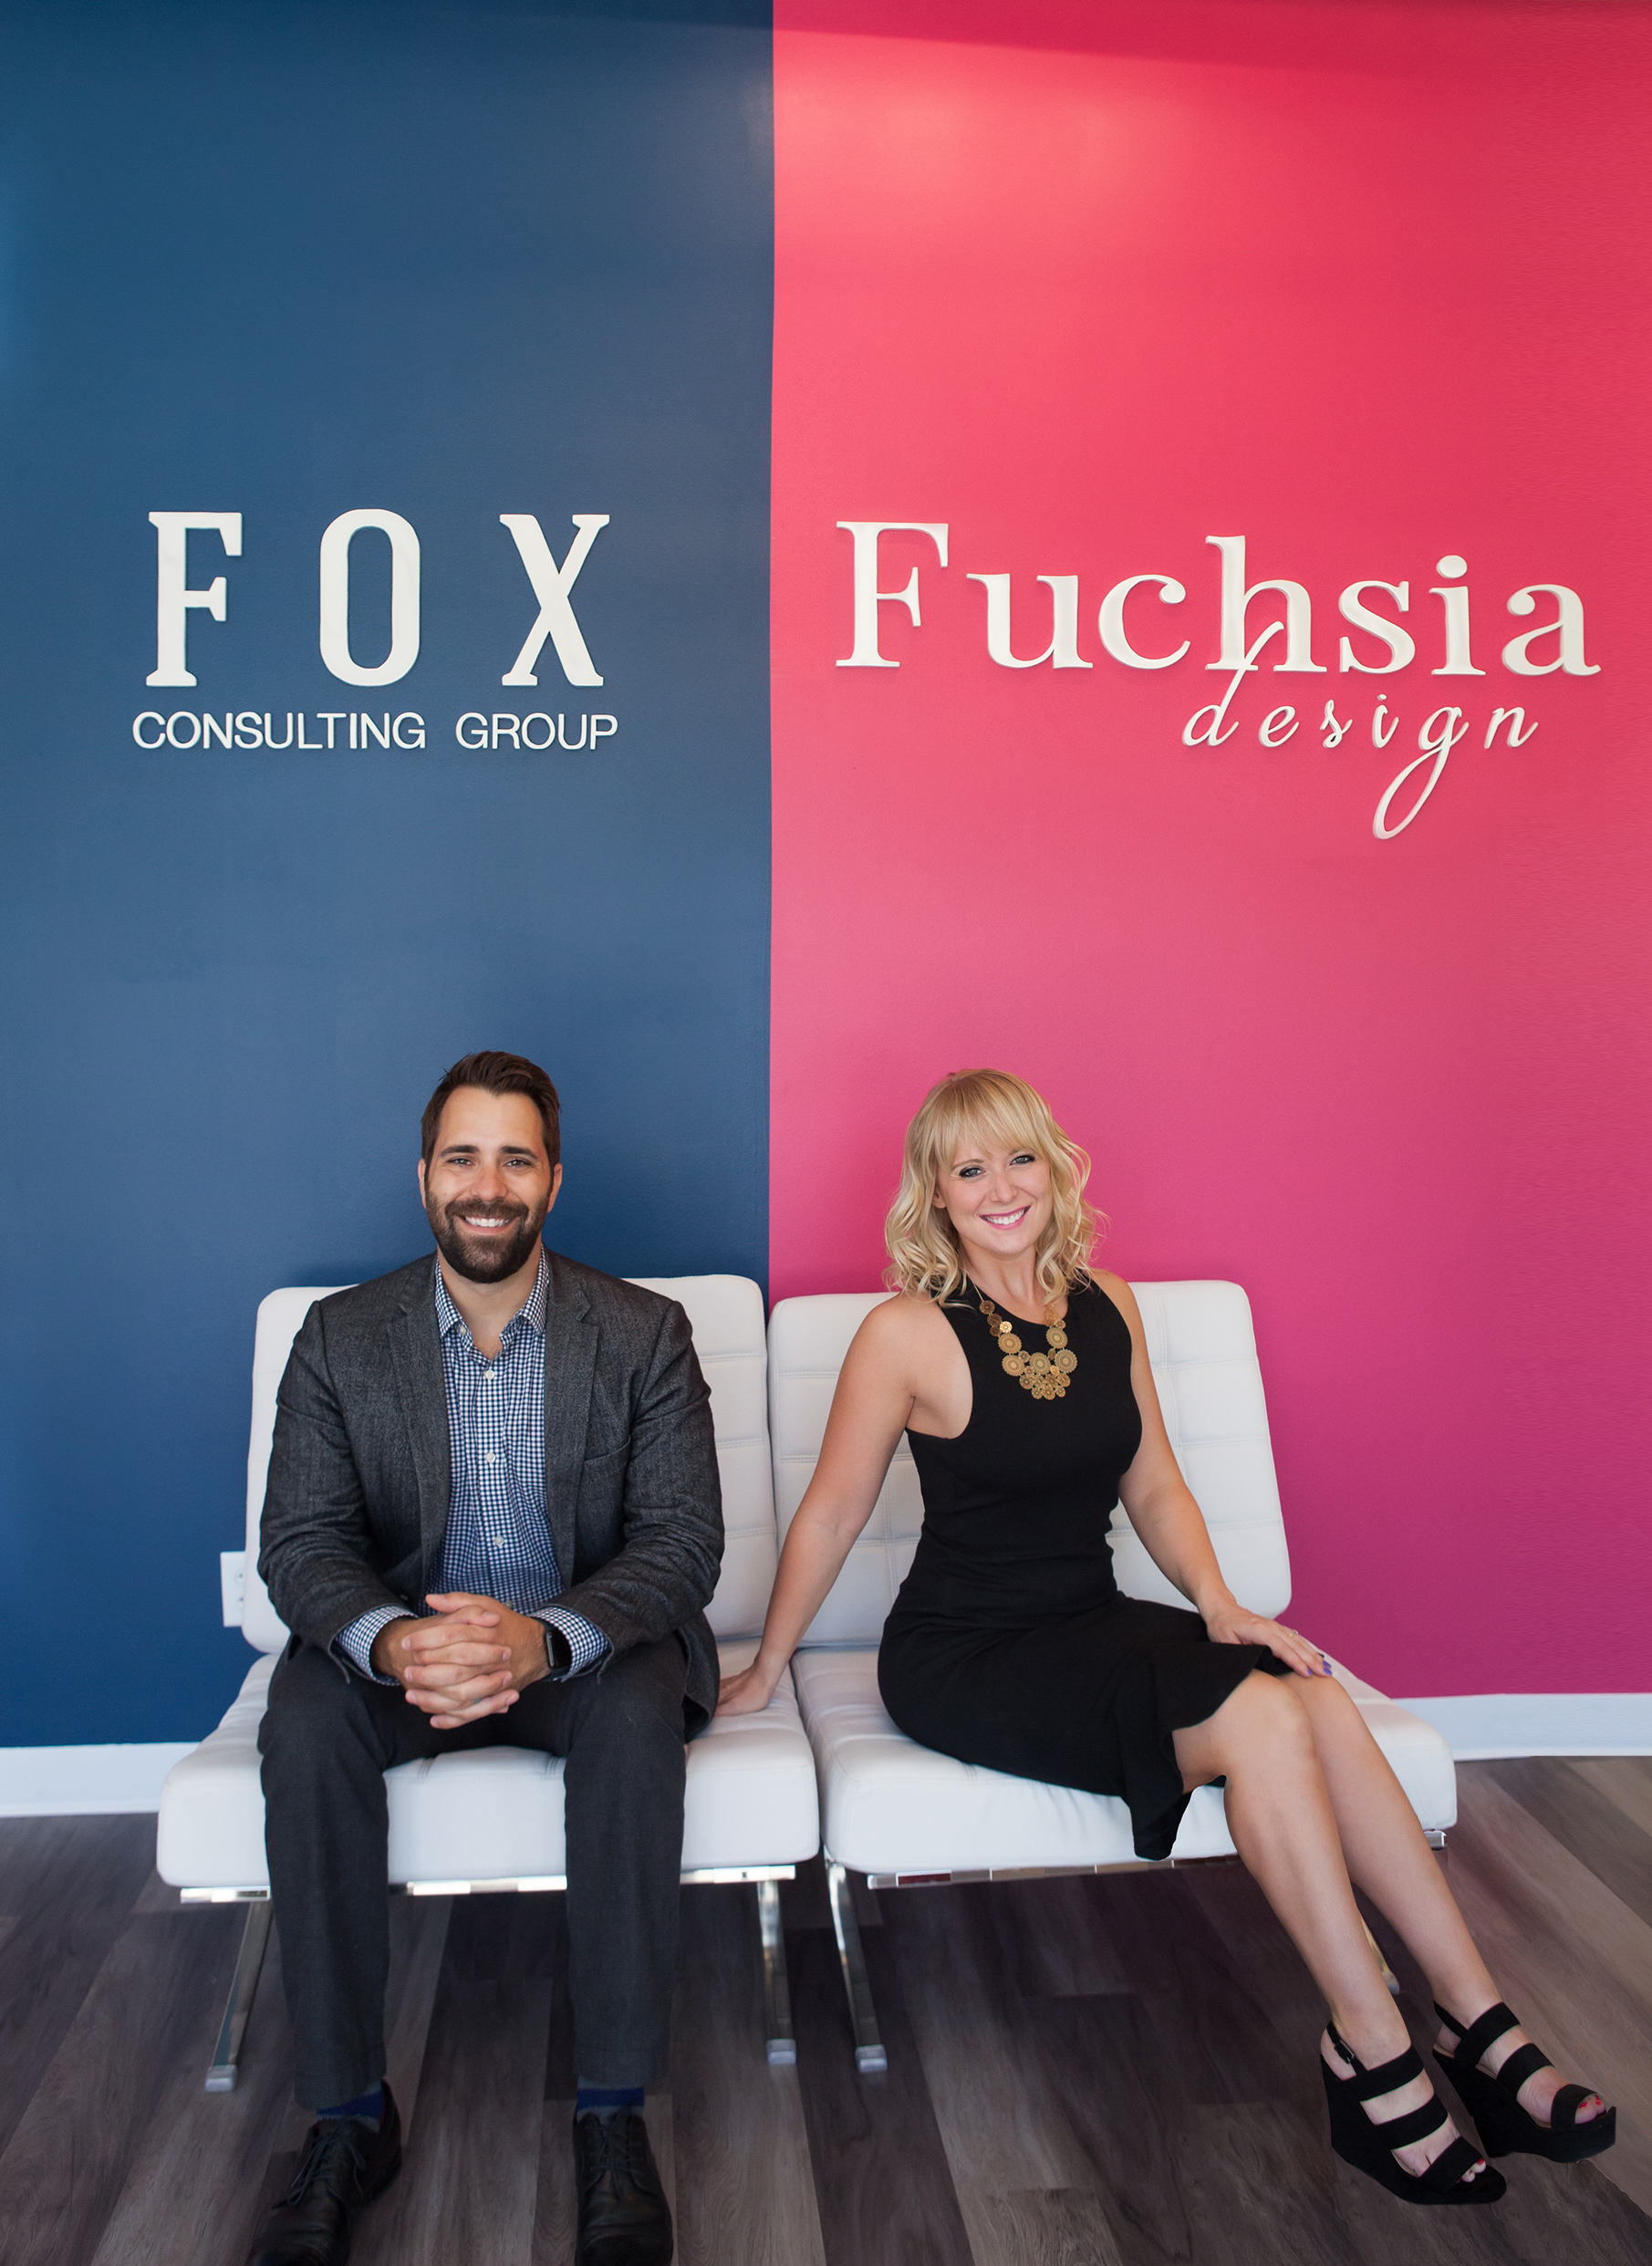 Autumn Fuchs with Fuchsia Design and Justin Fuchs with Fox Consulting Group